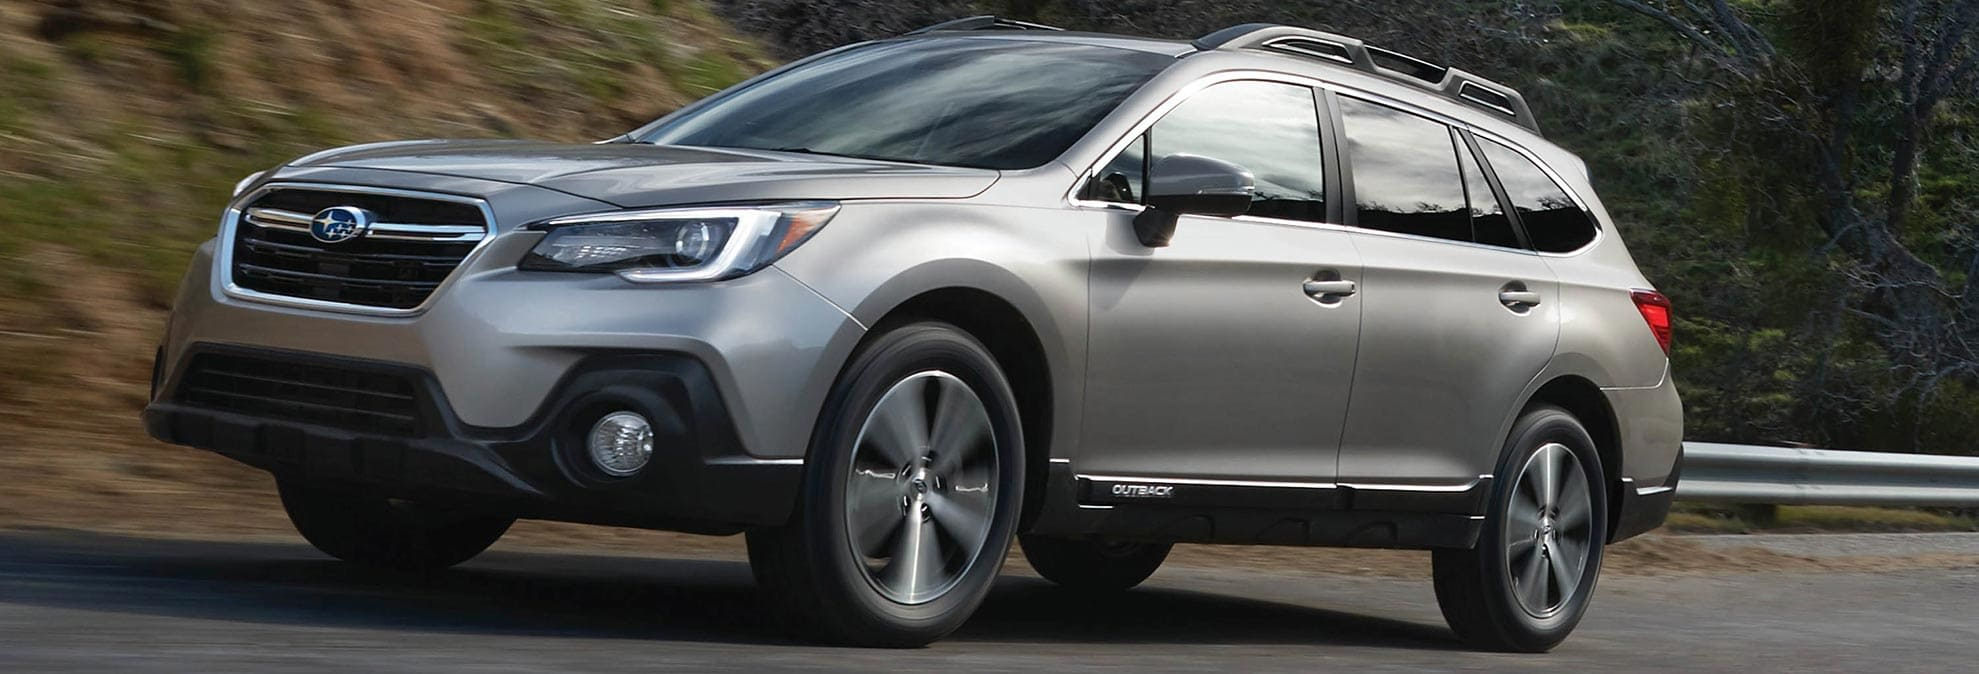 2018 Subaru Outback Gets Styling